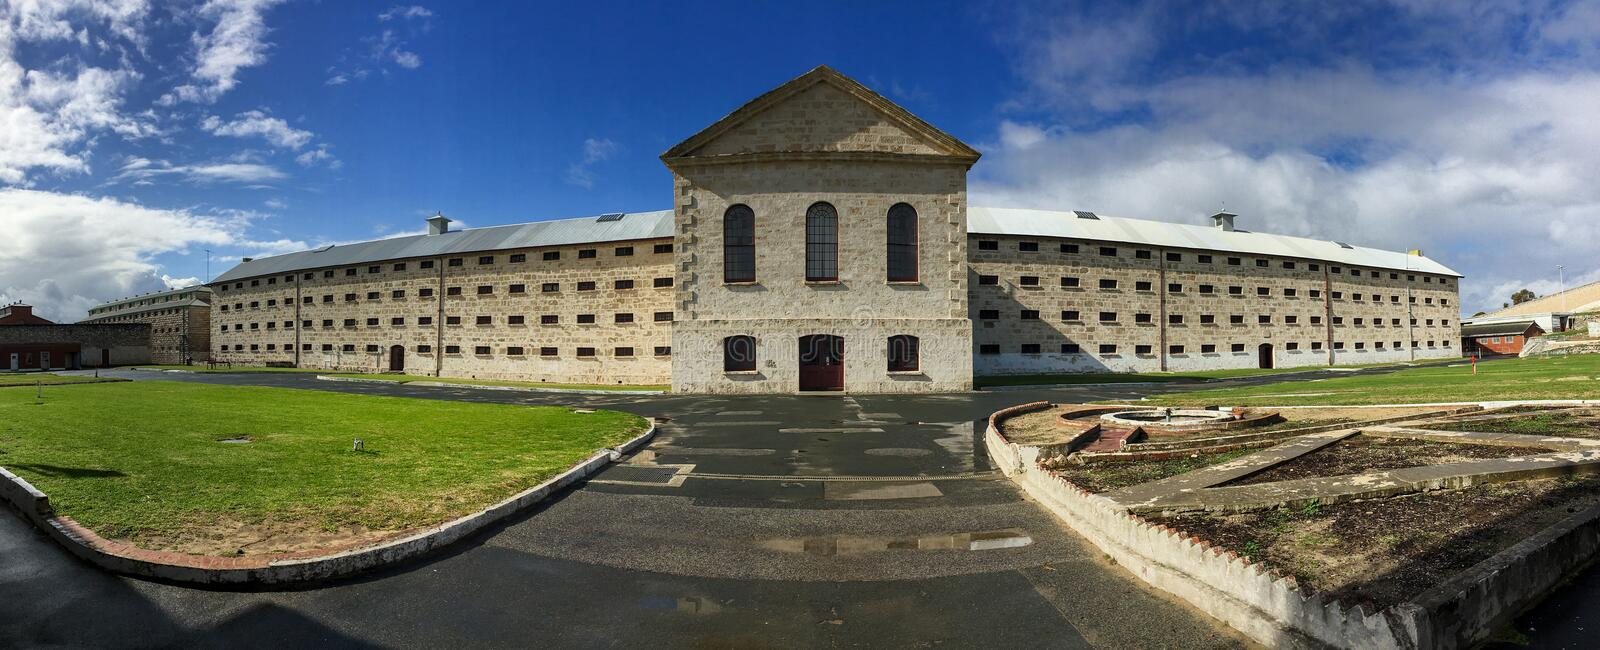 Panorama of the very old Fremantle Prison near Perth in Australia royalty free stock images